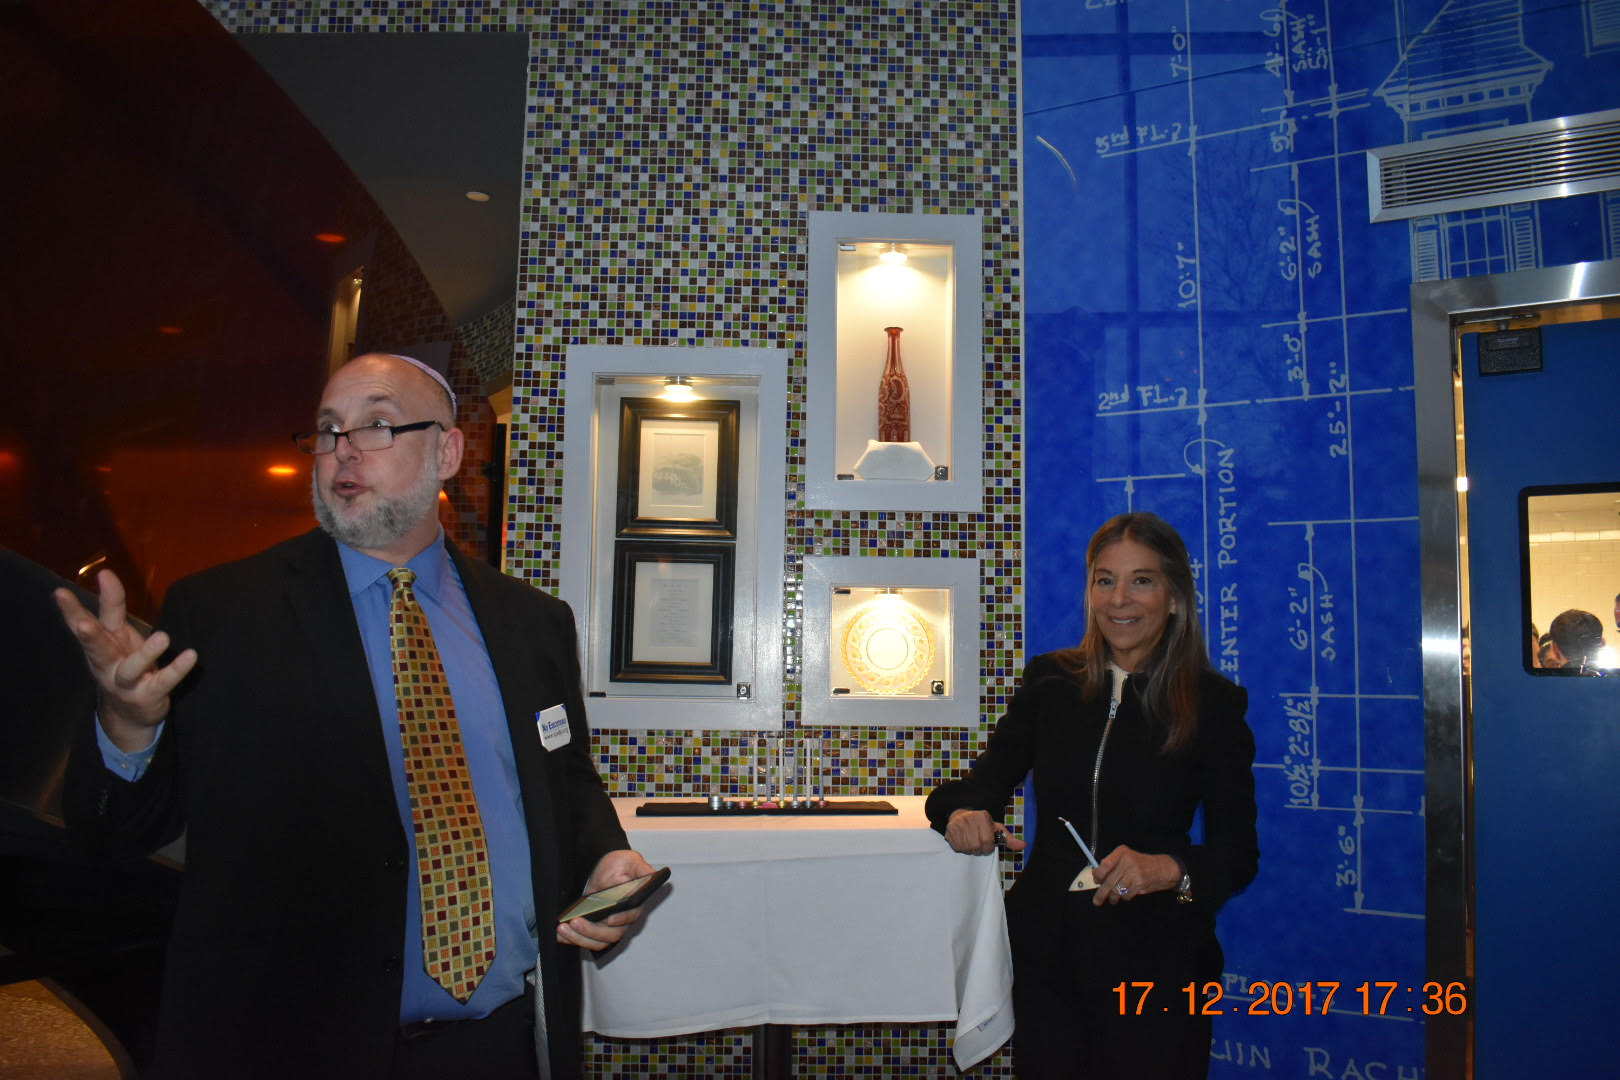 As the celebration begins, Abe Bonowitz, former Field Director of New Jerseyans for Alternatives to the Death Penalty and current Director of Death Penalty Action, lights the Chanukah candles with Sharon M. Elghanayan, wife of former Governor Jon Corzine.